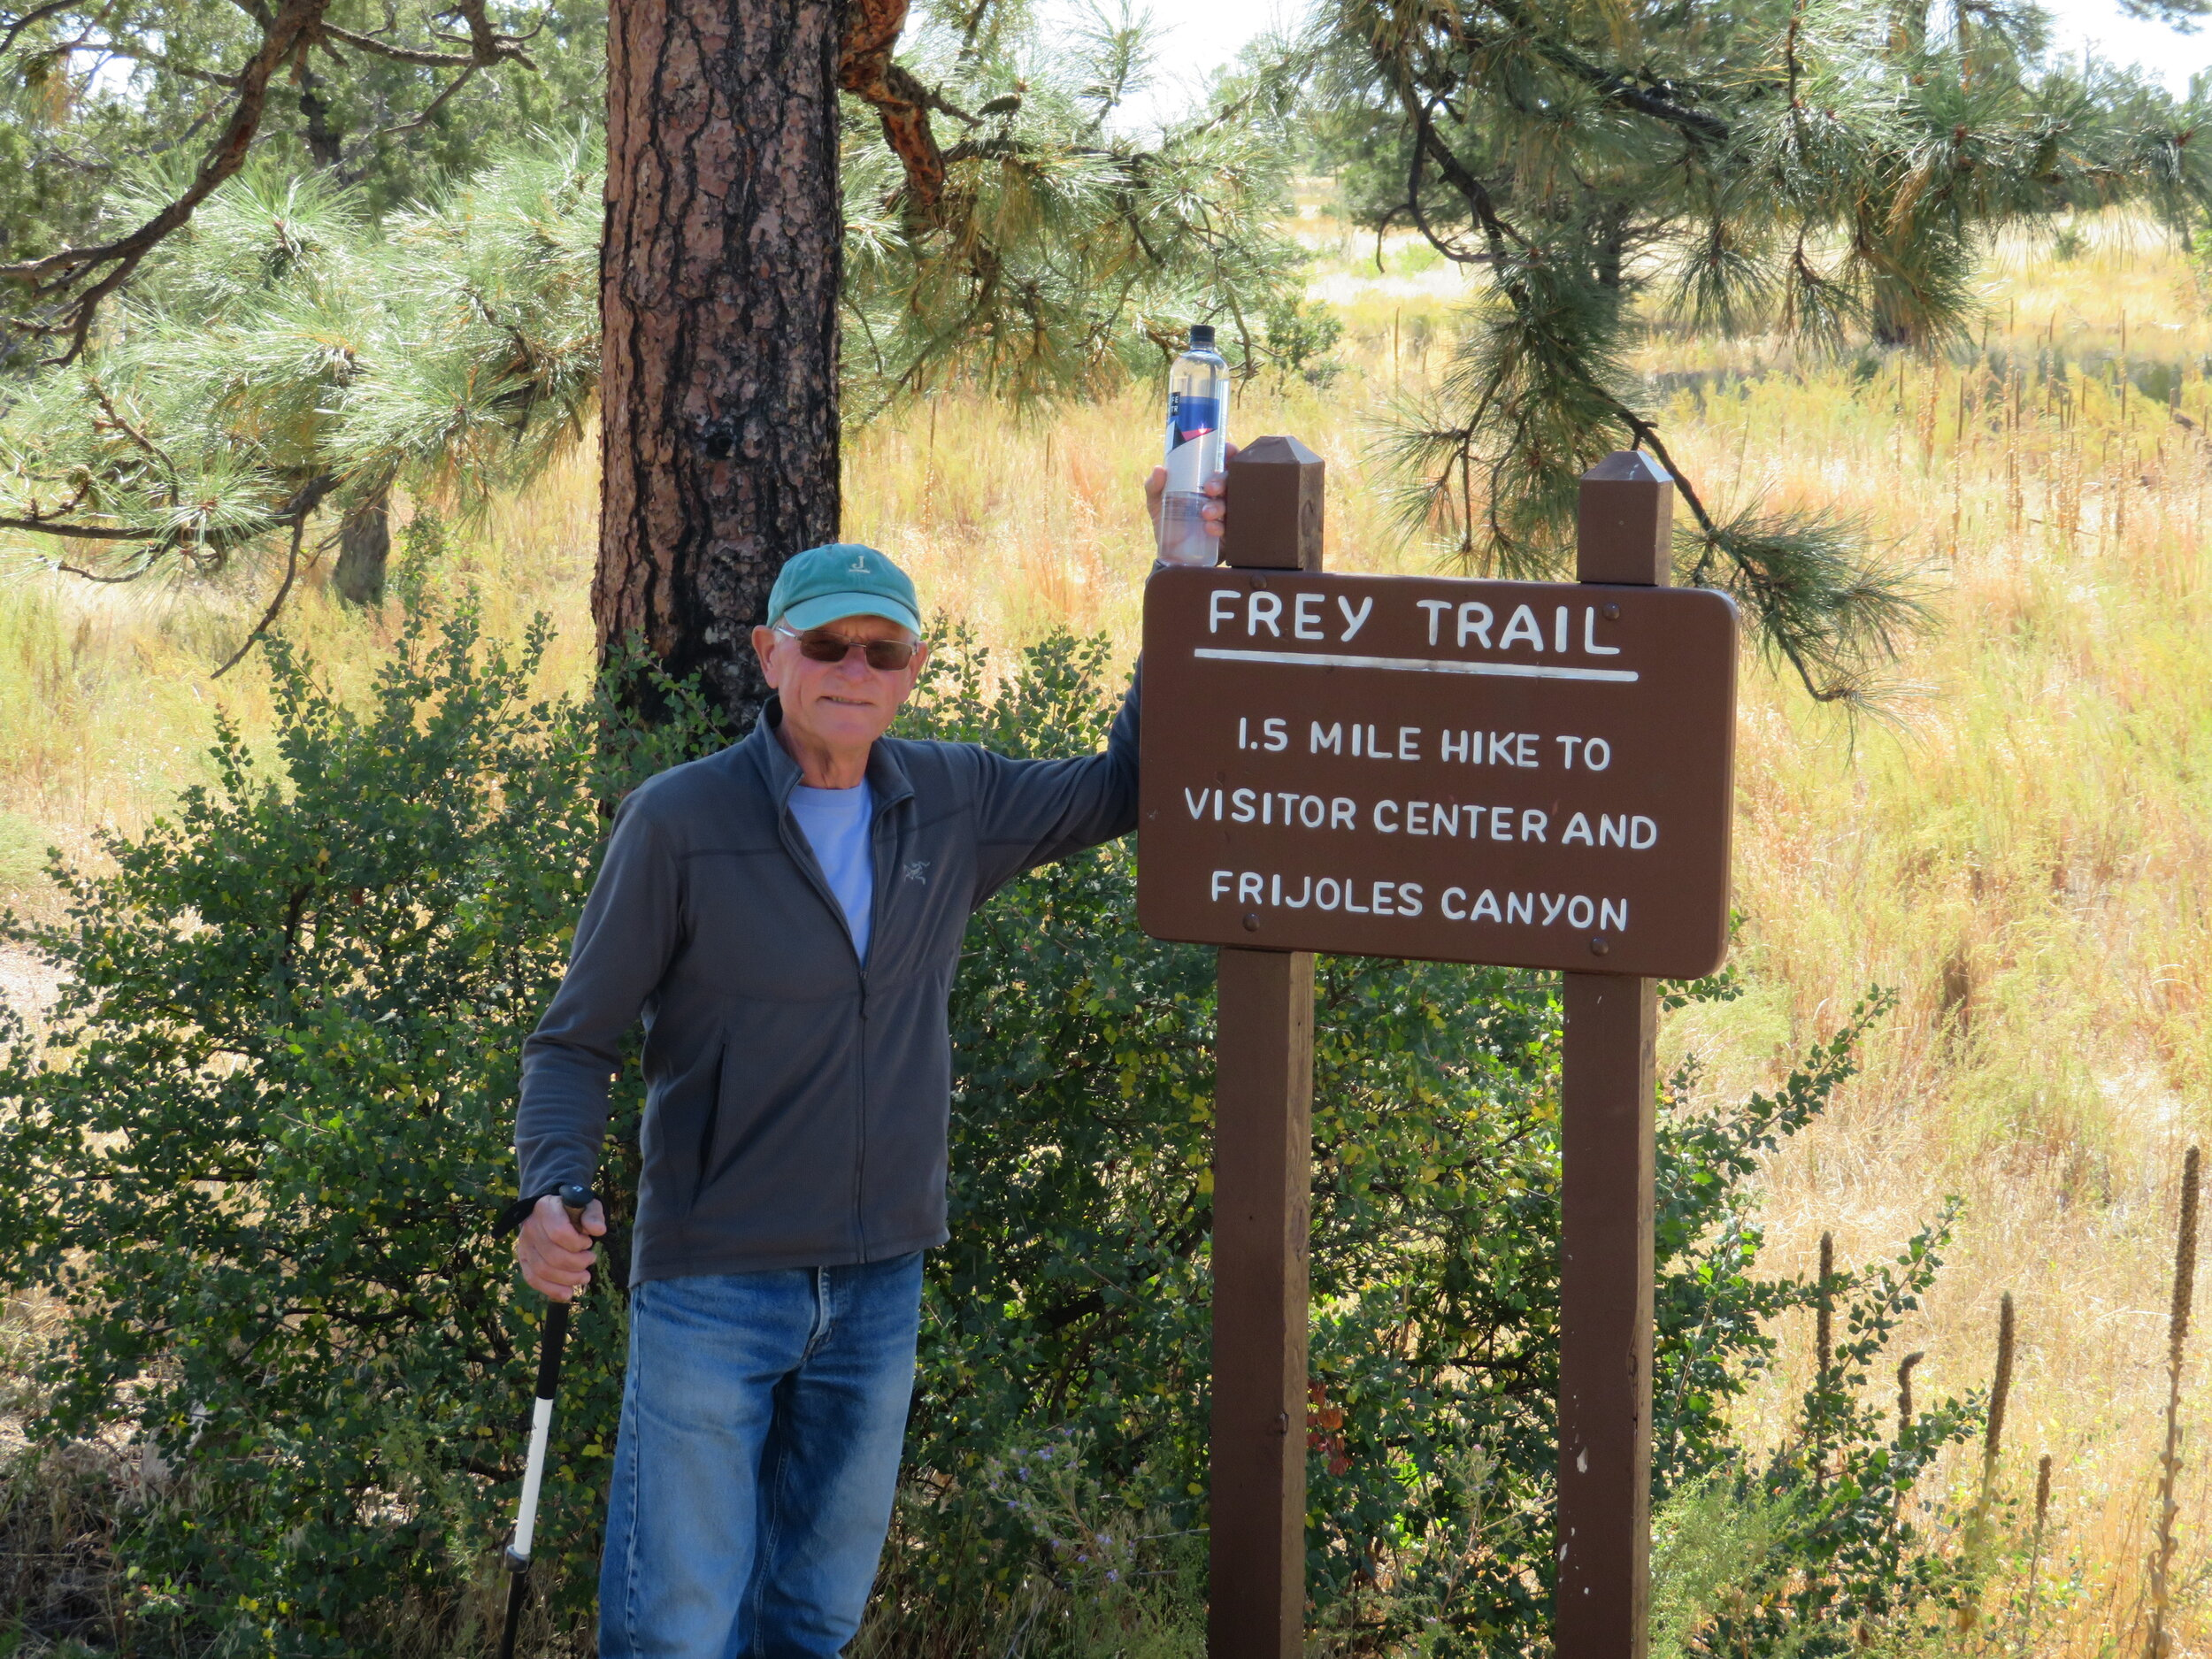 The Frey Trail was a great option for getting to the Visitor's Center from the campground.